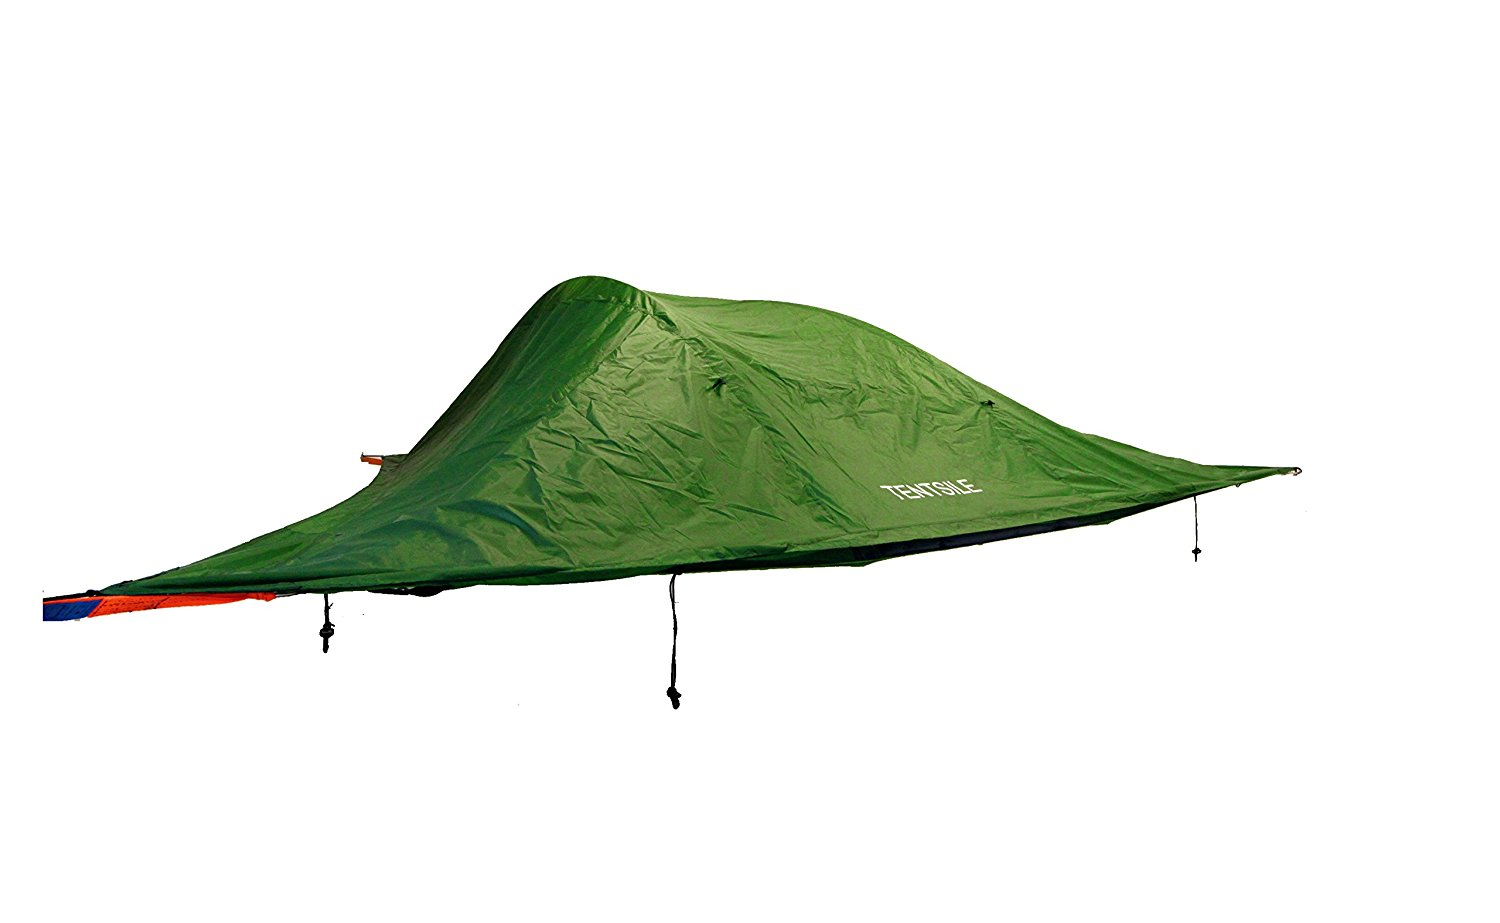 Picture of the Tentsile Stingray with tarp on